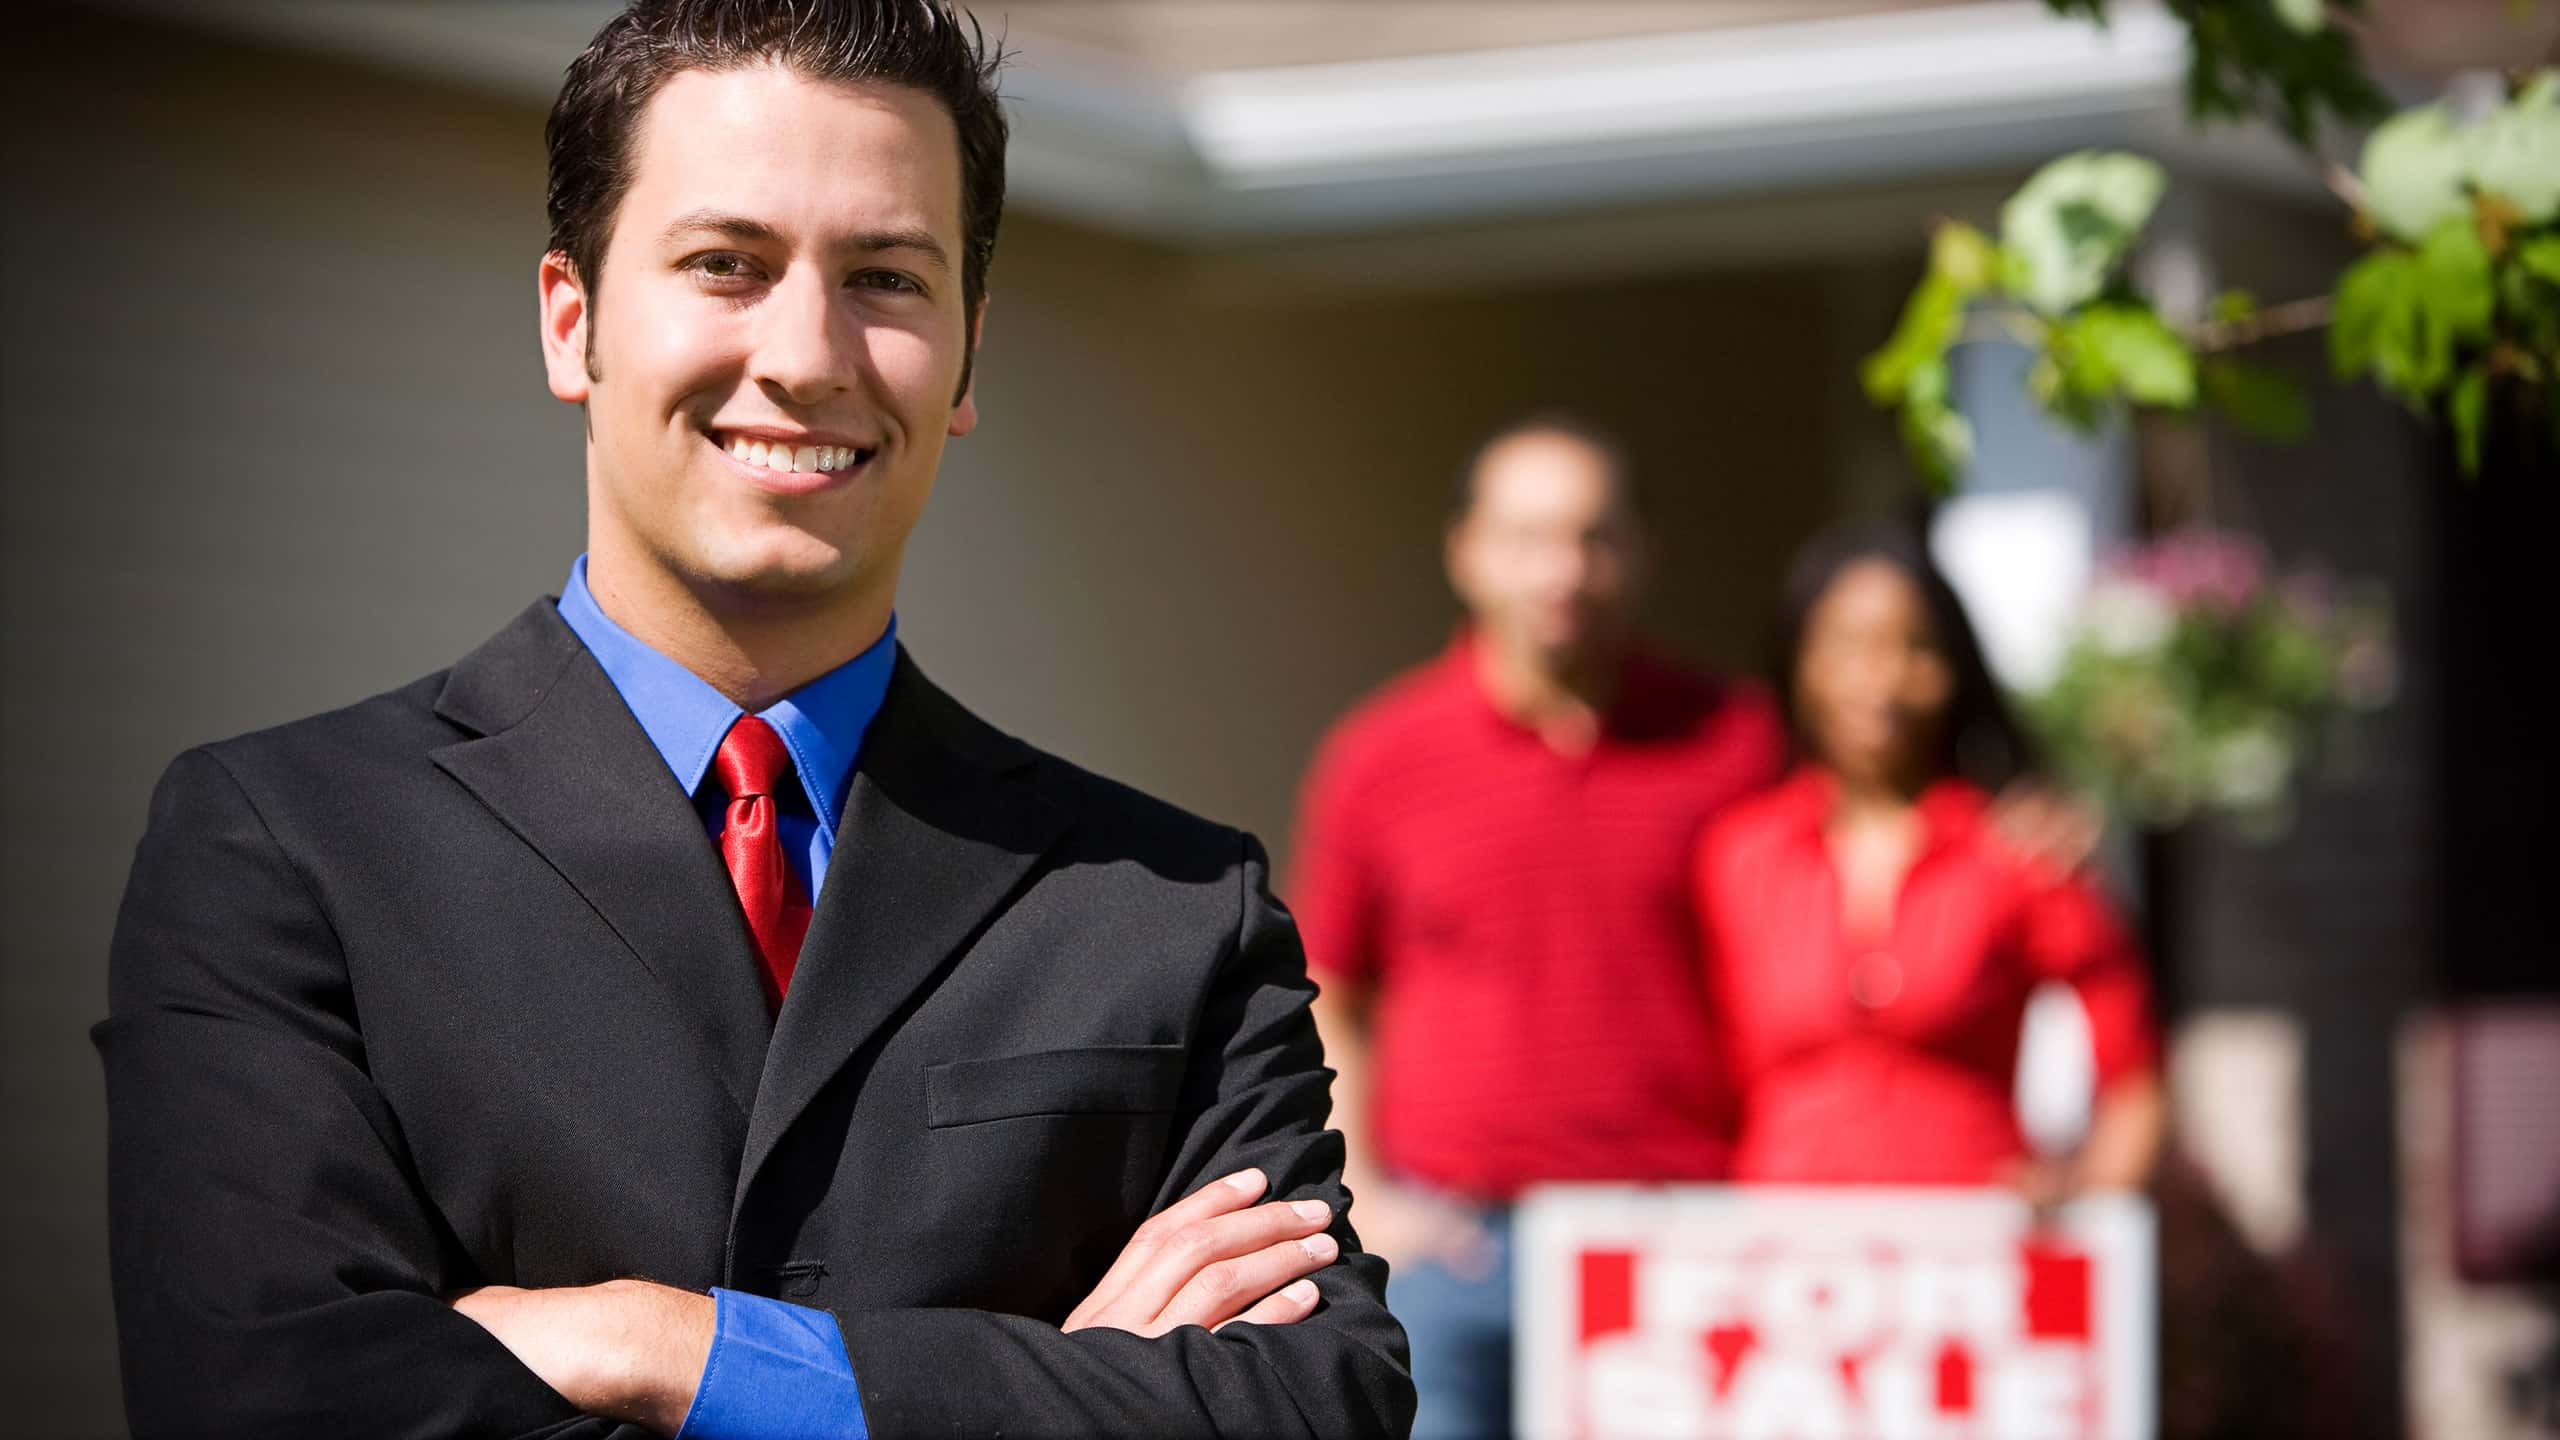 What is involved in becoming a real estate agent?